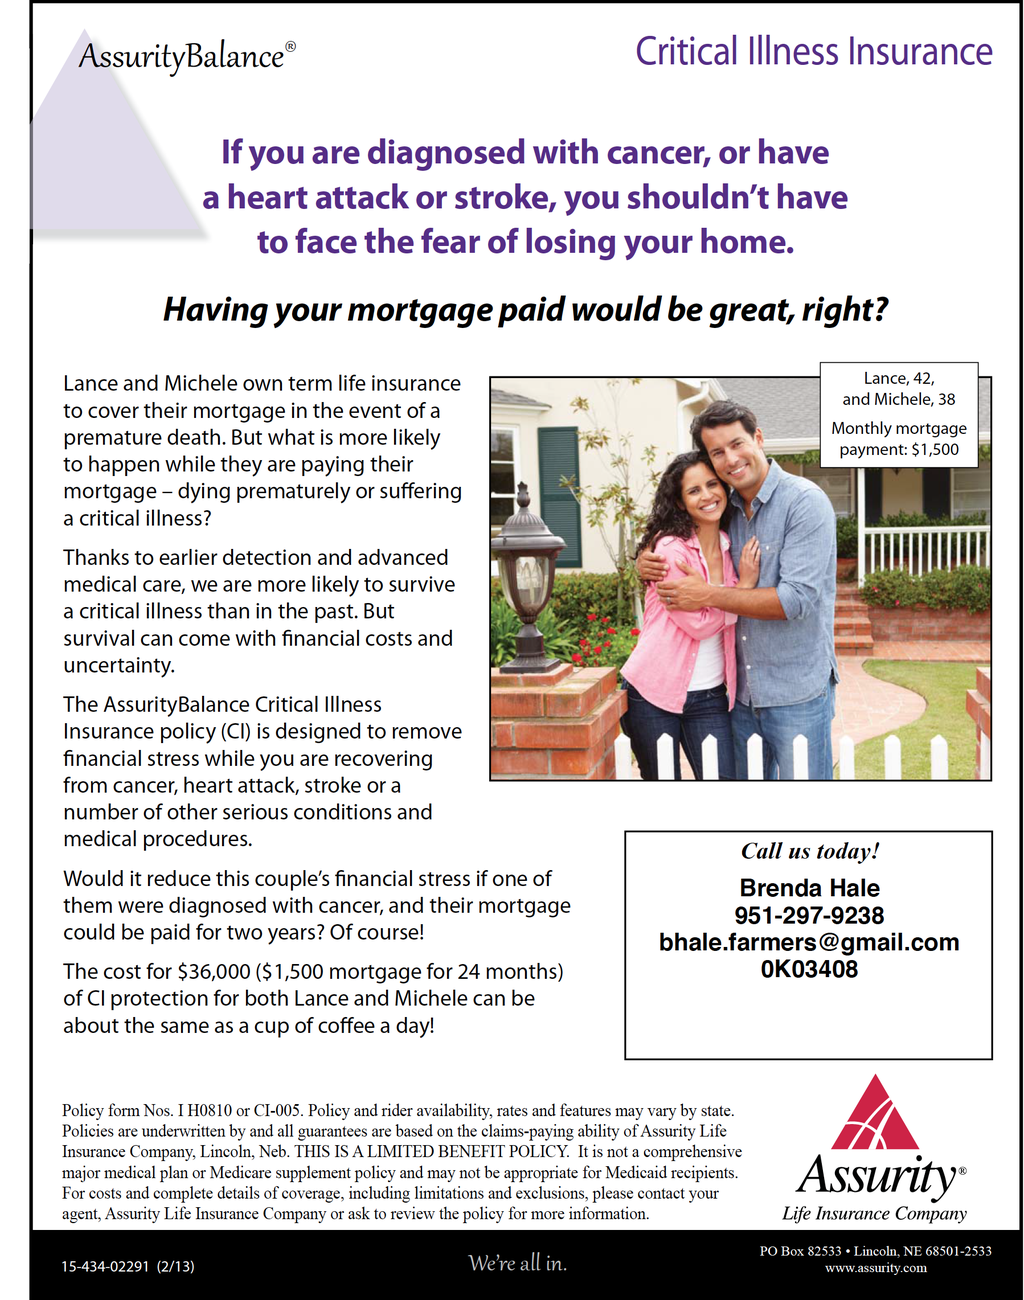 Cover Your Mortgage When You Can't Work! Risk free